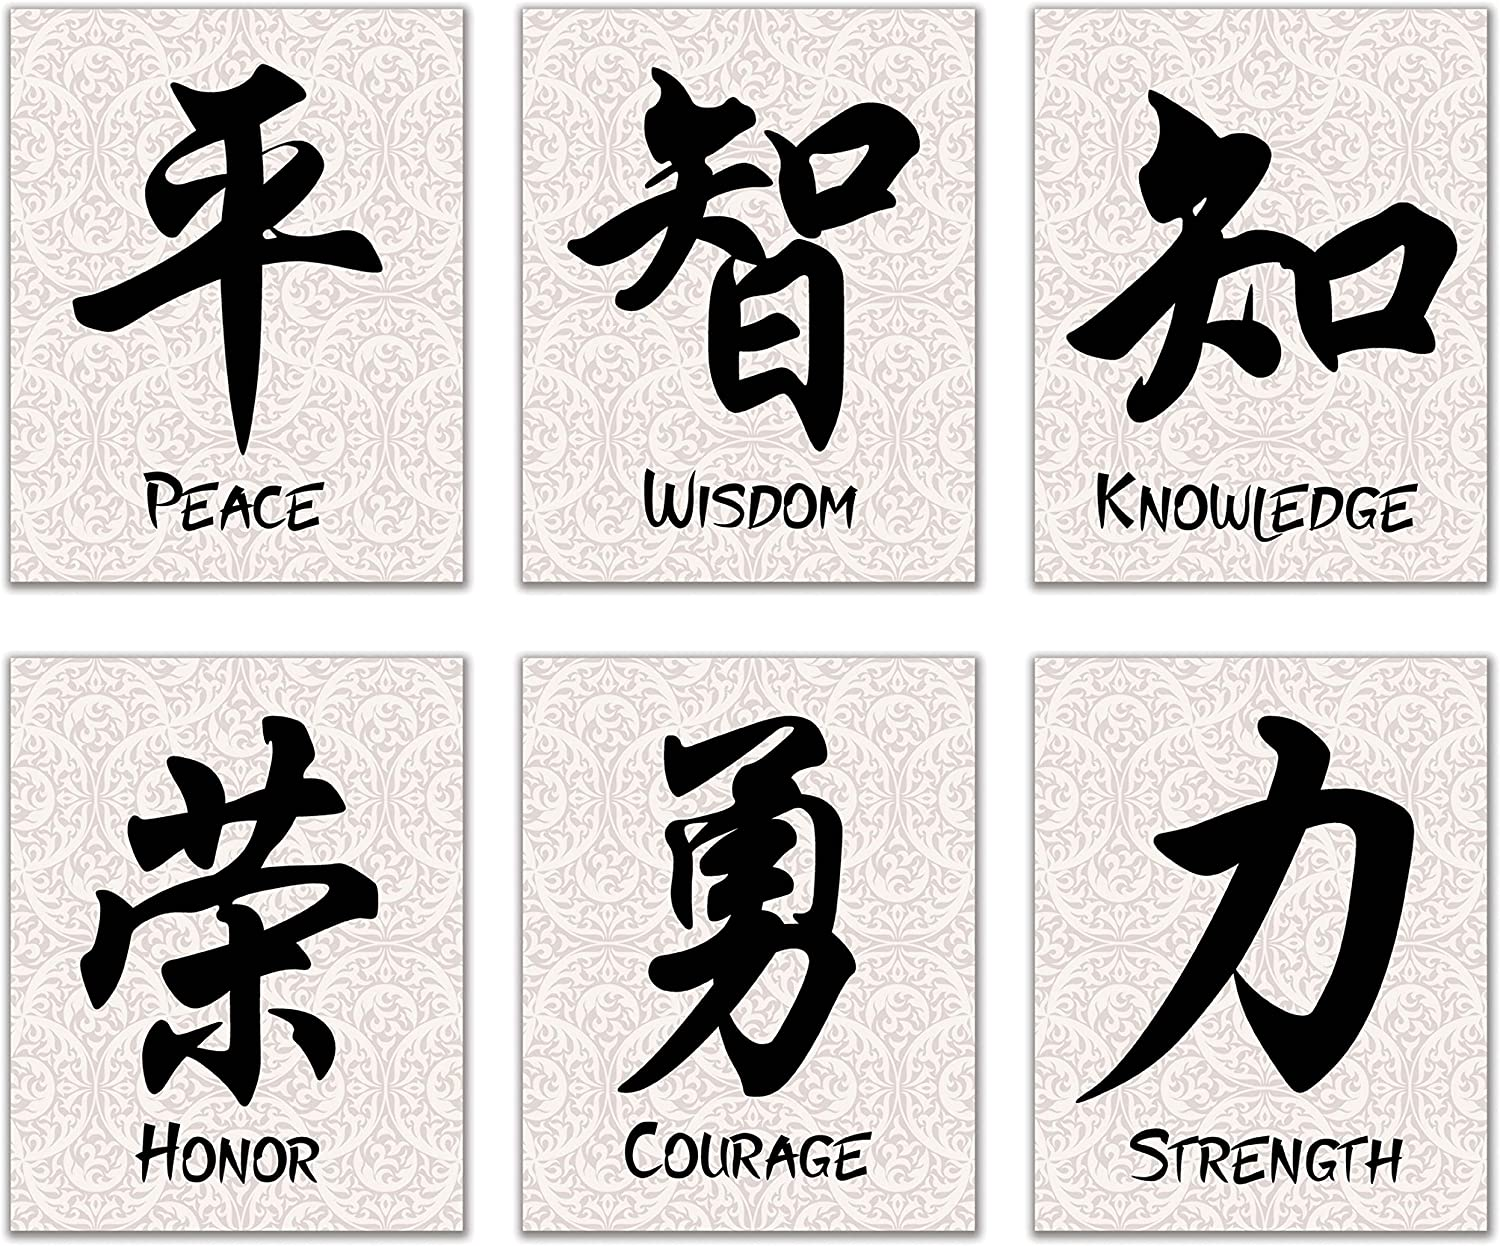 Infinity Creations Inspirational Wall Decor: Set of 6 Unframed Chinese Calligraphy Poster Prints (8